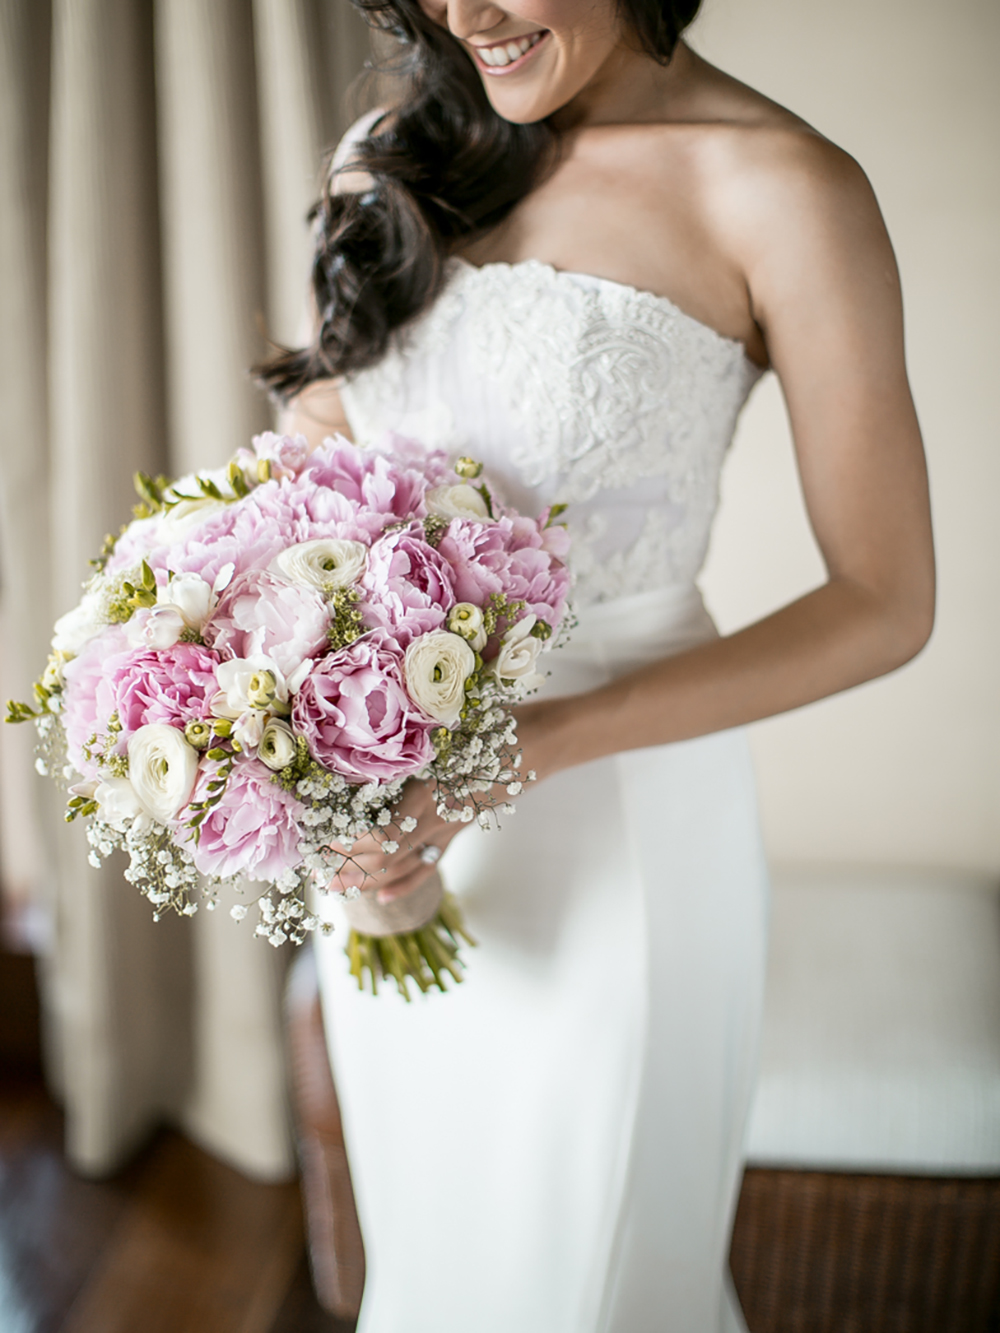 Photo by Mayad Studios. www.theweddingnotebook.com